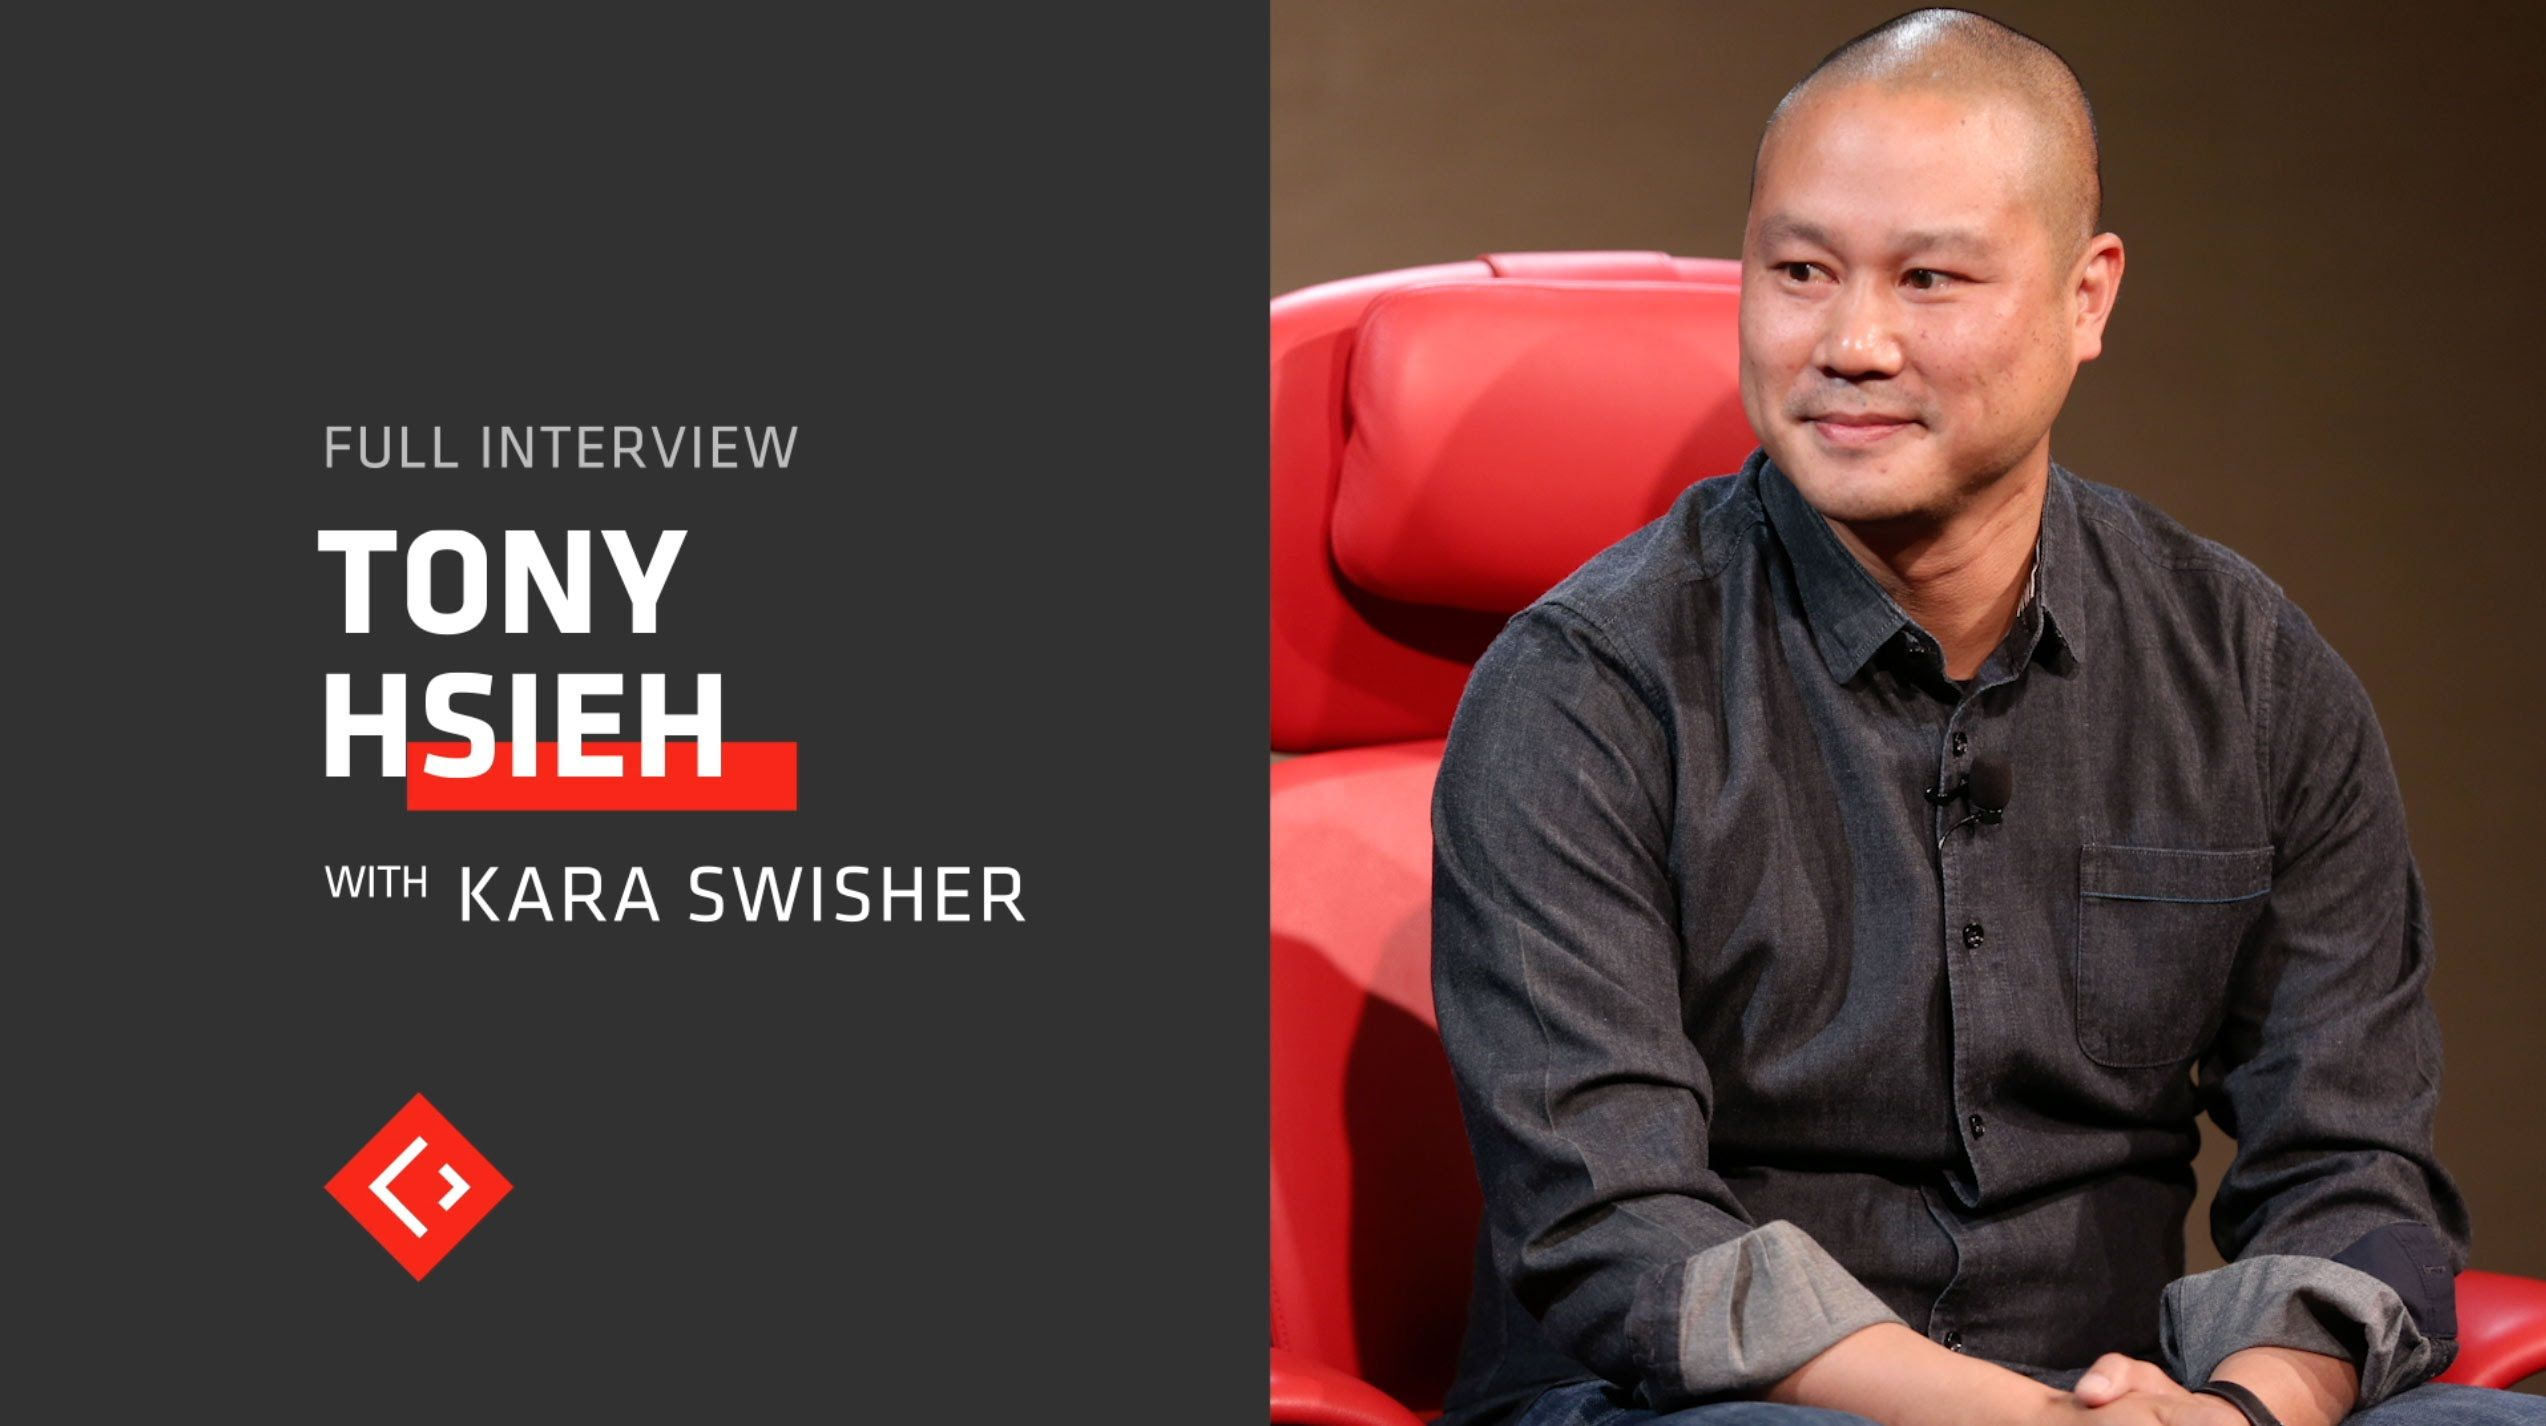 Tony Hsieh Explains Why He Sold Zappos And What He Thinks Of Amazon Fu Tony Hsieh Explain Why Self Organization